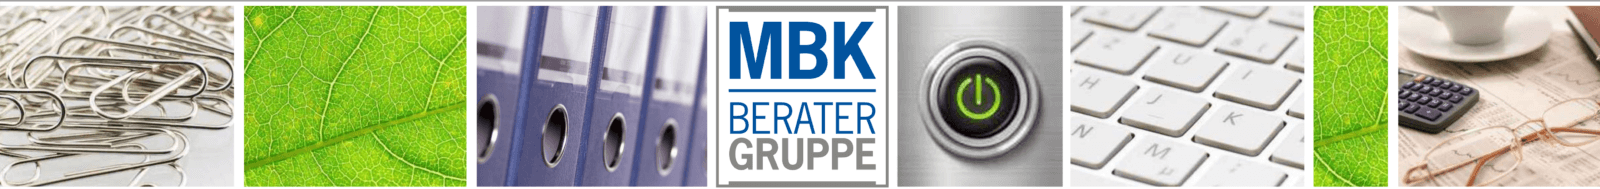 MBK-Beratergruppe Logo